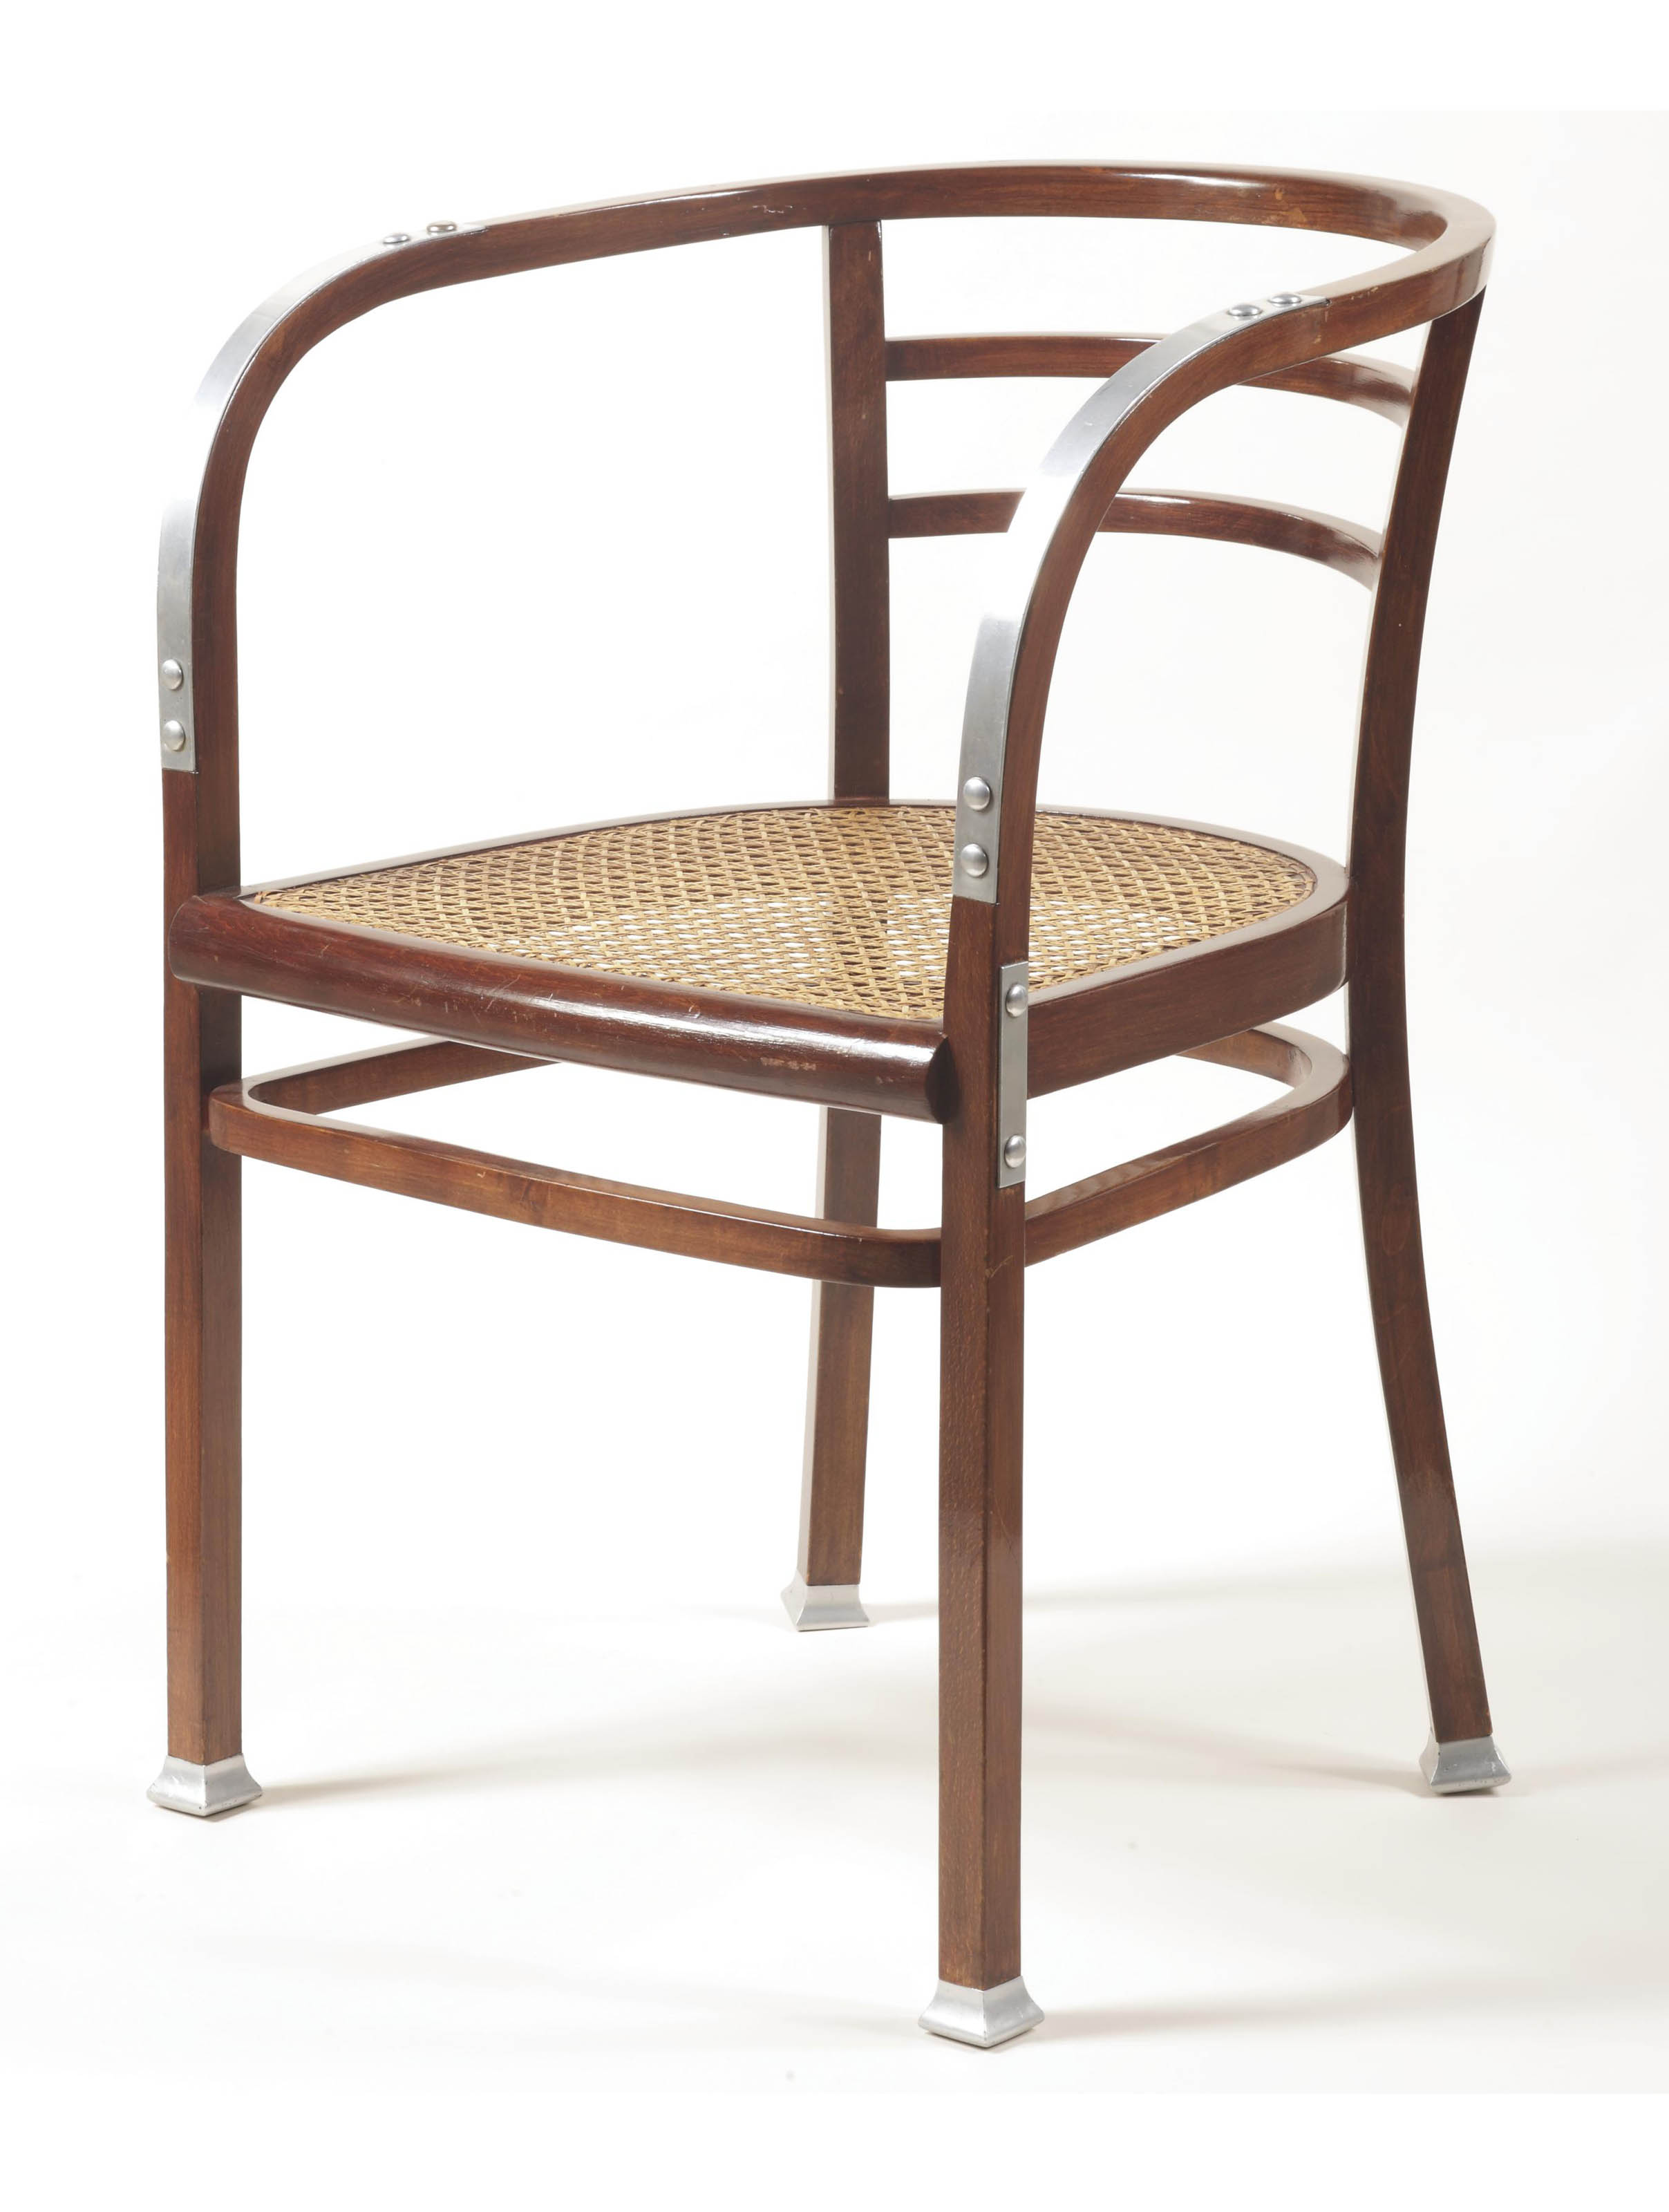 A BENT AND STAINED BEECH, CANE AND NICKELED-METAL ARMCHAIR FROM THE ÖSTERREICHISCHE POSTSPARKASSE